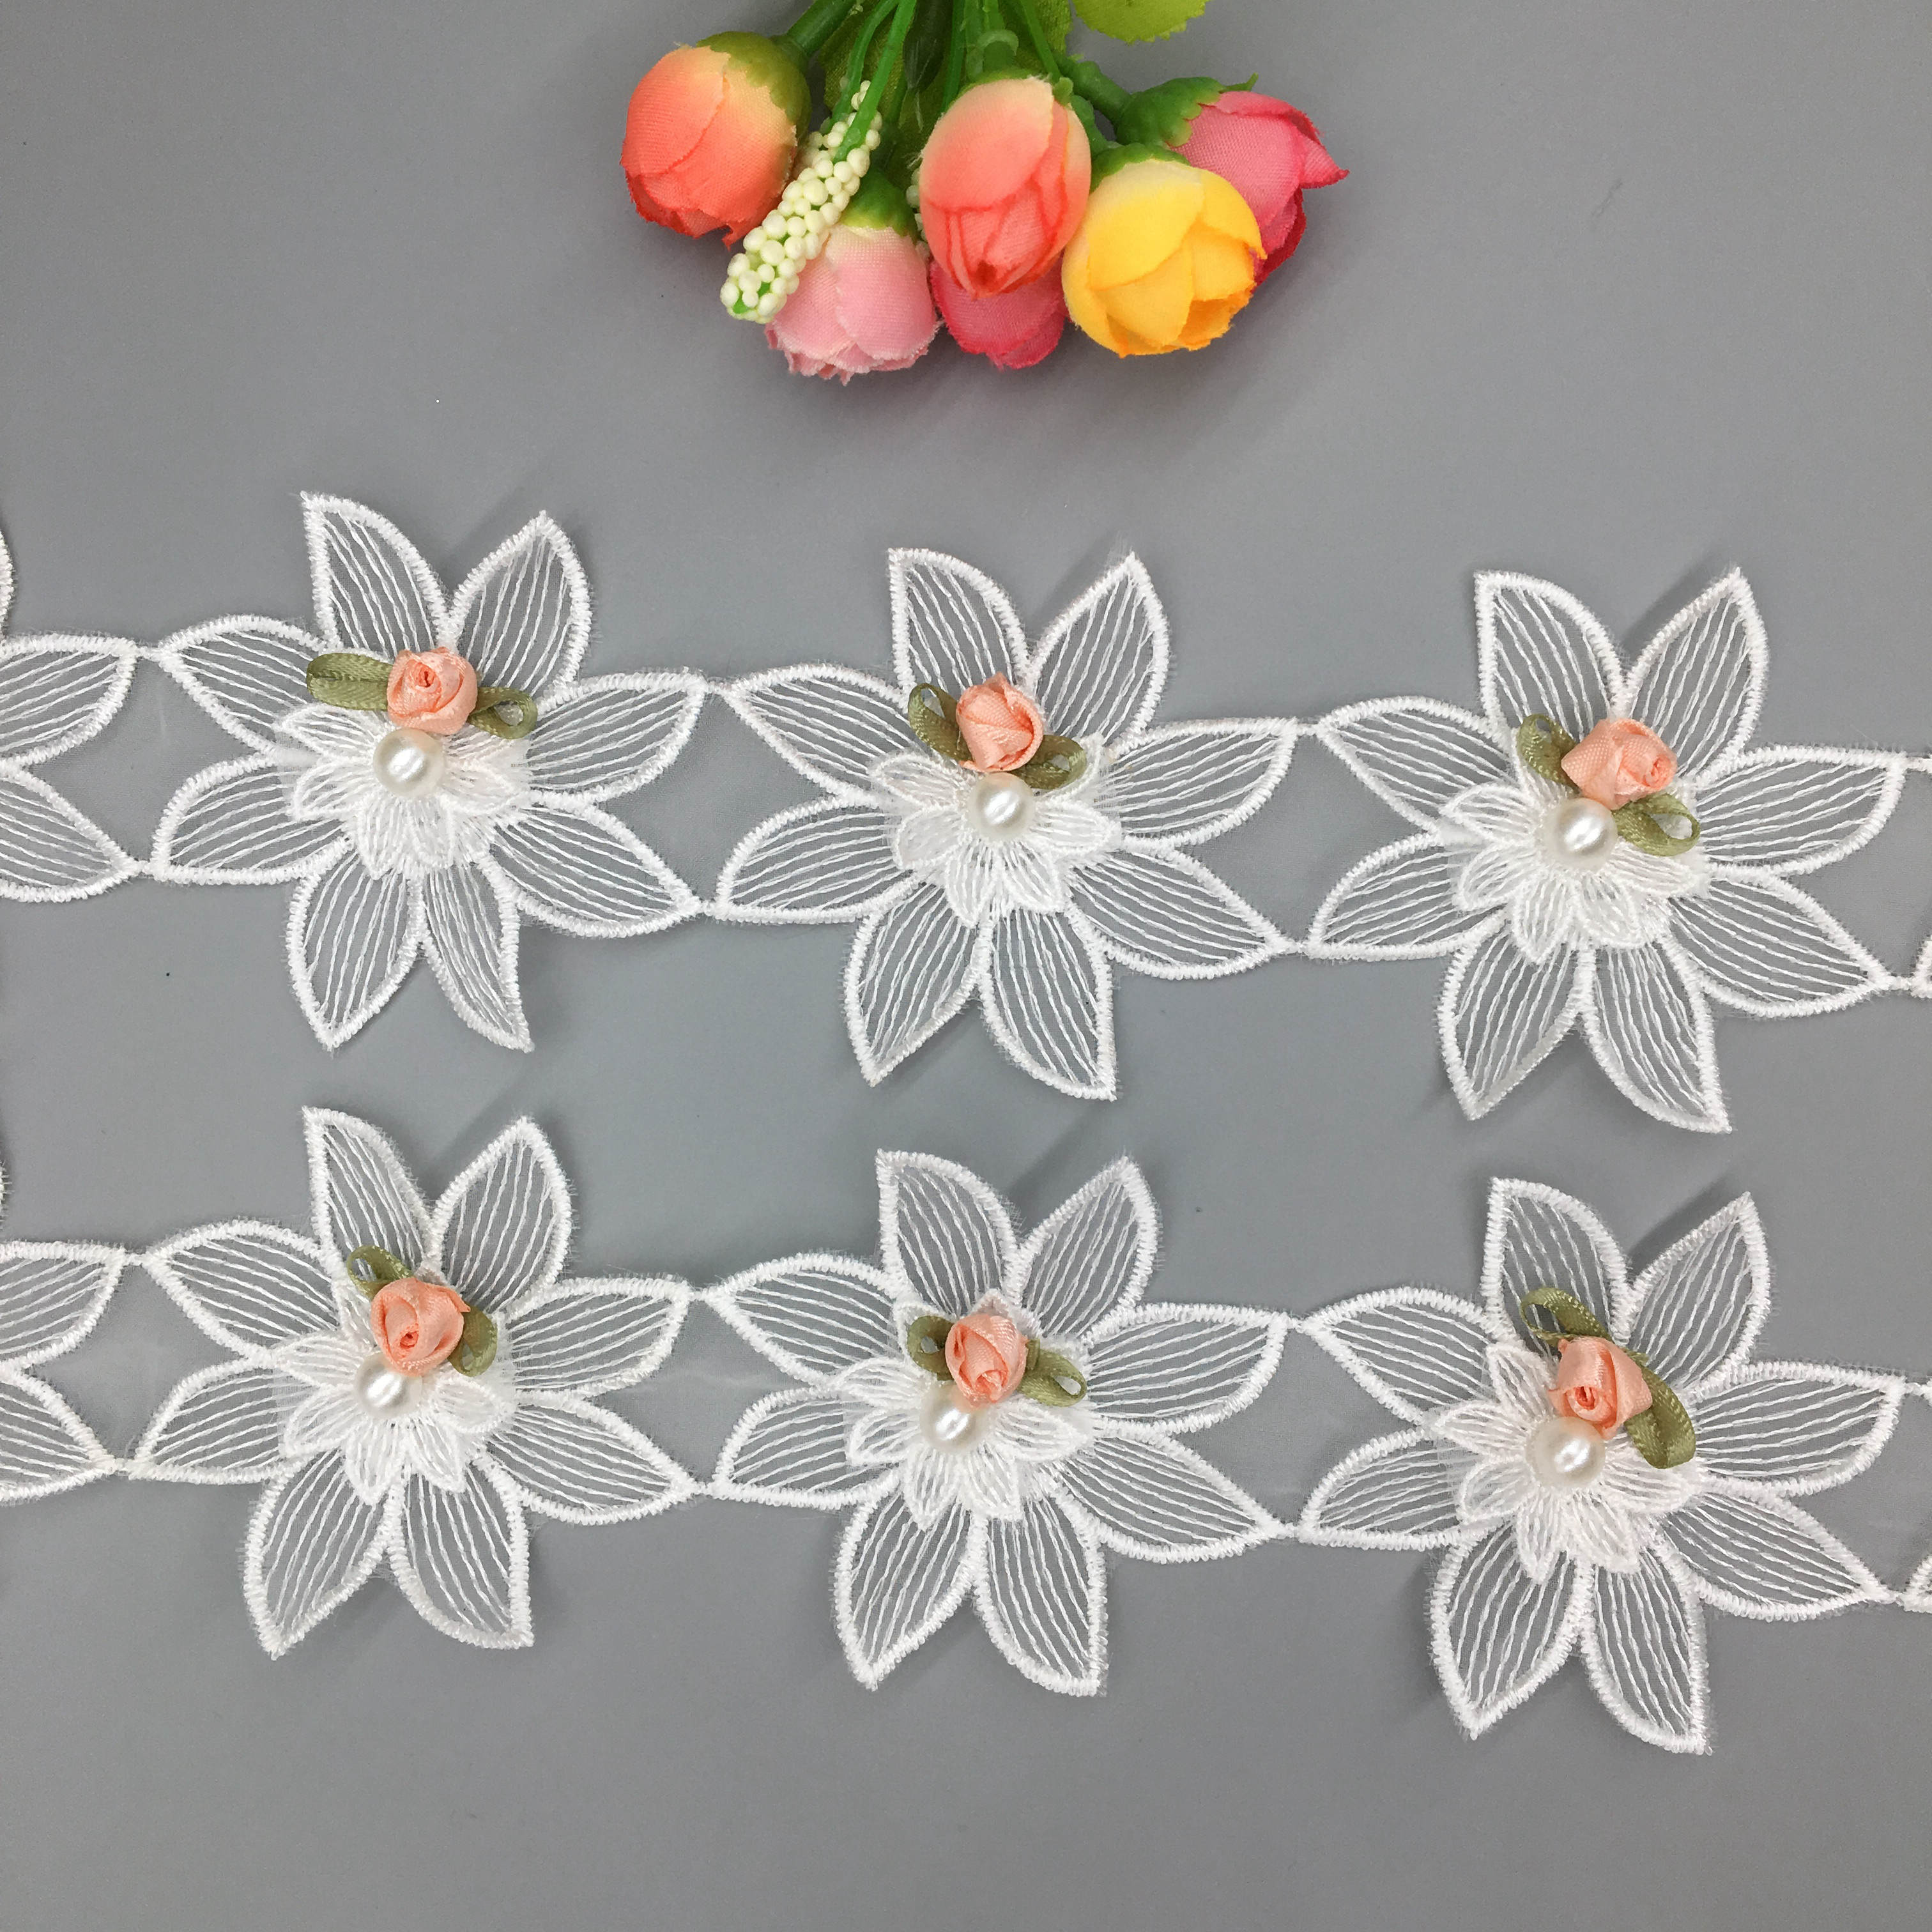 Embroidery Costume Ribbon Wedding Dress Beaded Flowers Edging Craft Lace Trim 1Y